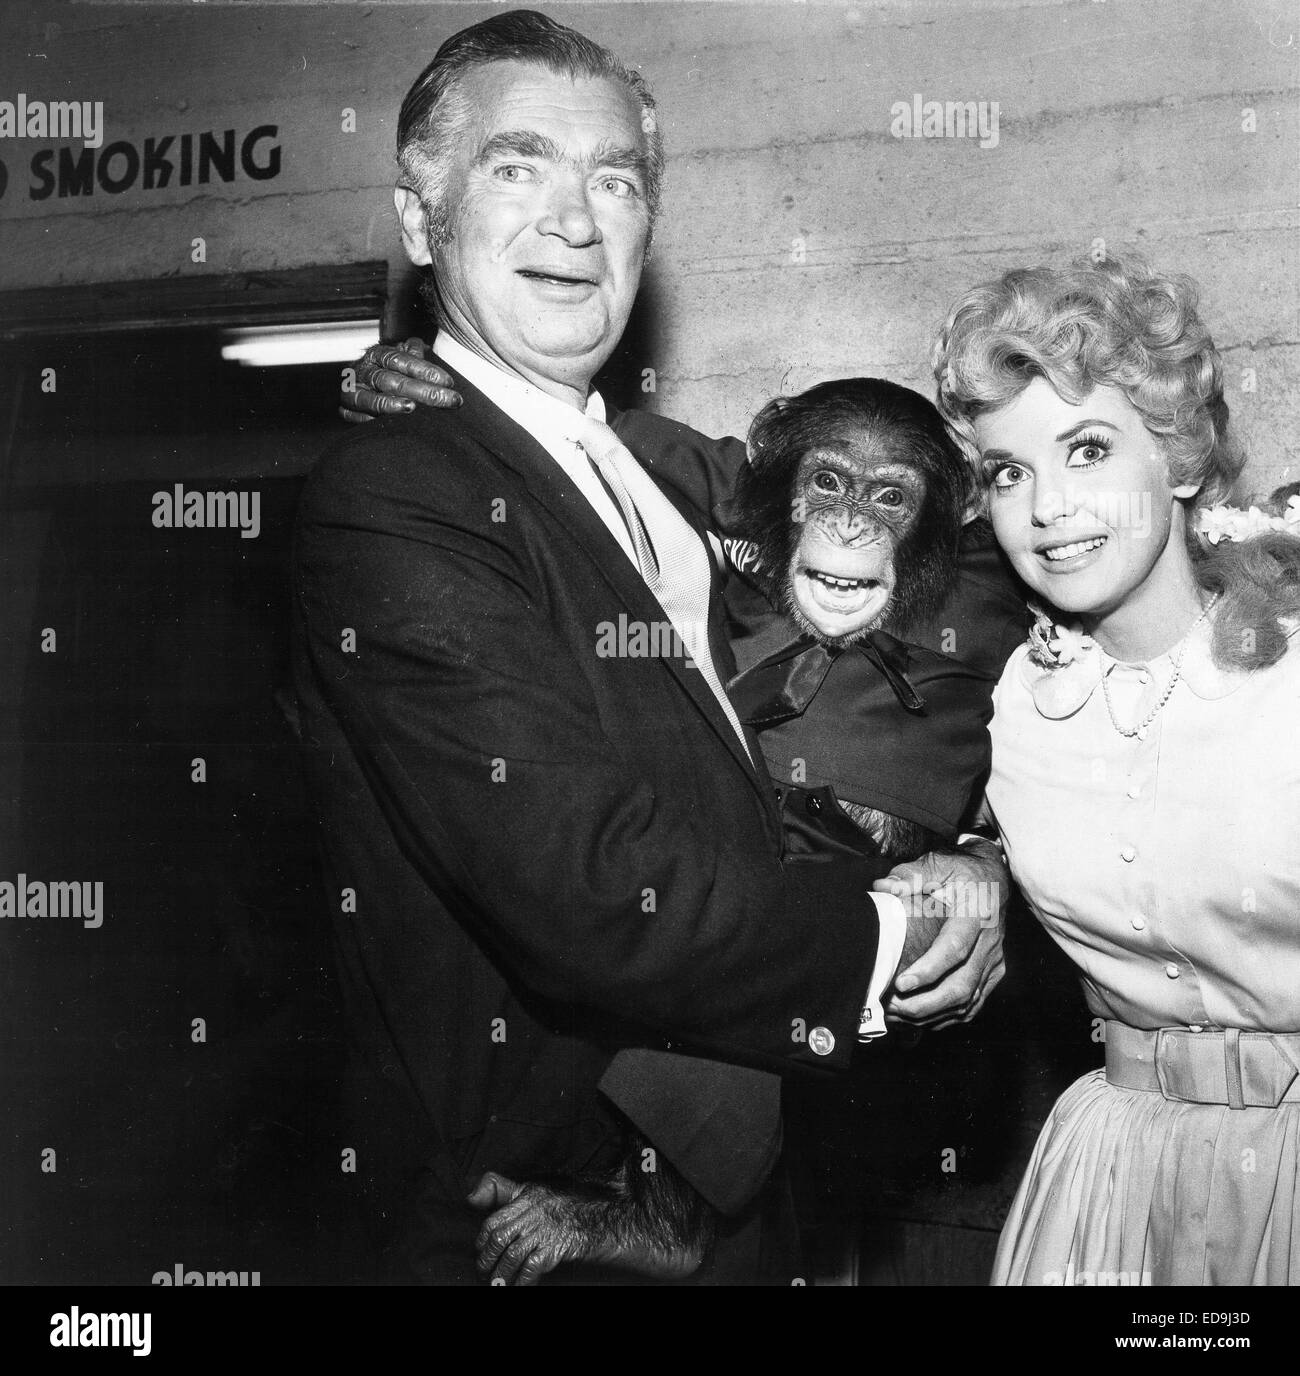 File. 2nd Jan, 2015. DONNA DOUGLAS, who played hillbilly bombshell Elly May Clampett on the baby-boomer-beloved 1960s sitcom The Beverly Hillbillies, has died in her Louisiana home. She was 81. PICTURED - c. 1960's - Donna Douglas and Buddy Ebsen with chimp at Patsy Awards. Credit:  Globe Photos/ZUMAPRESS.com/Alamy Live News Stock Photo